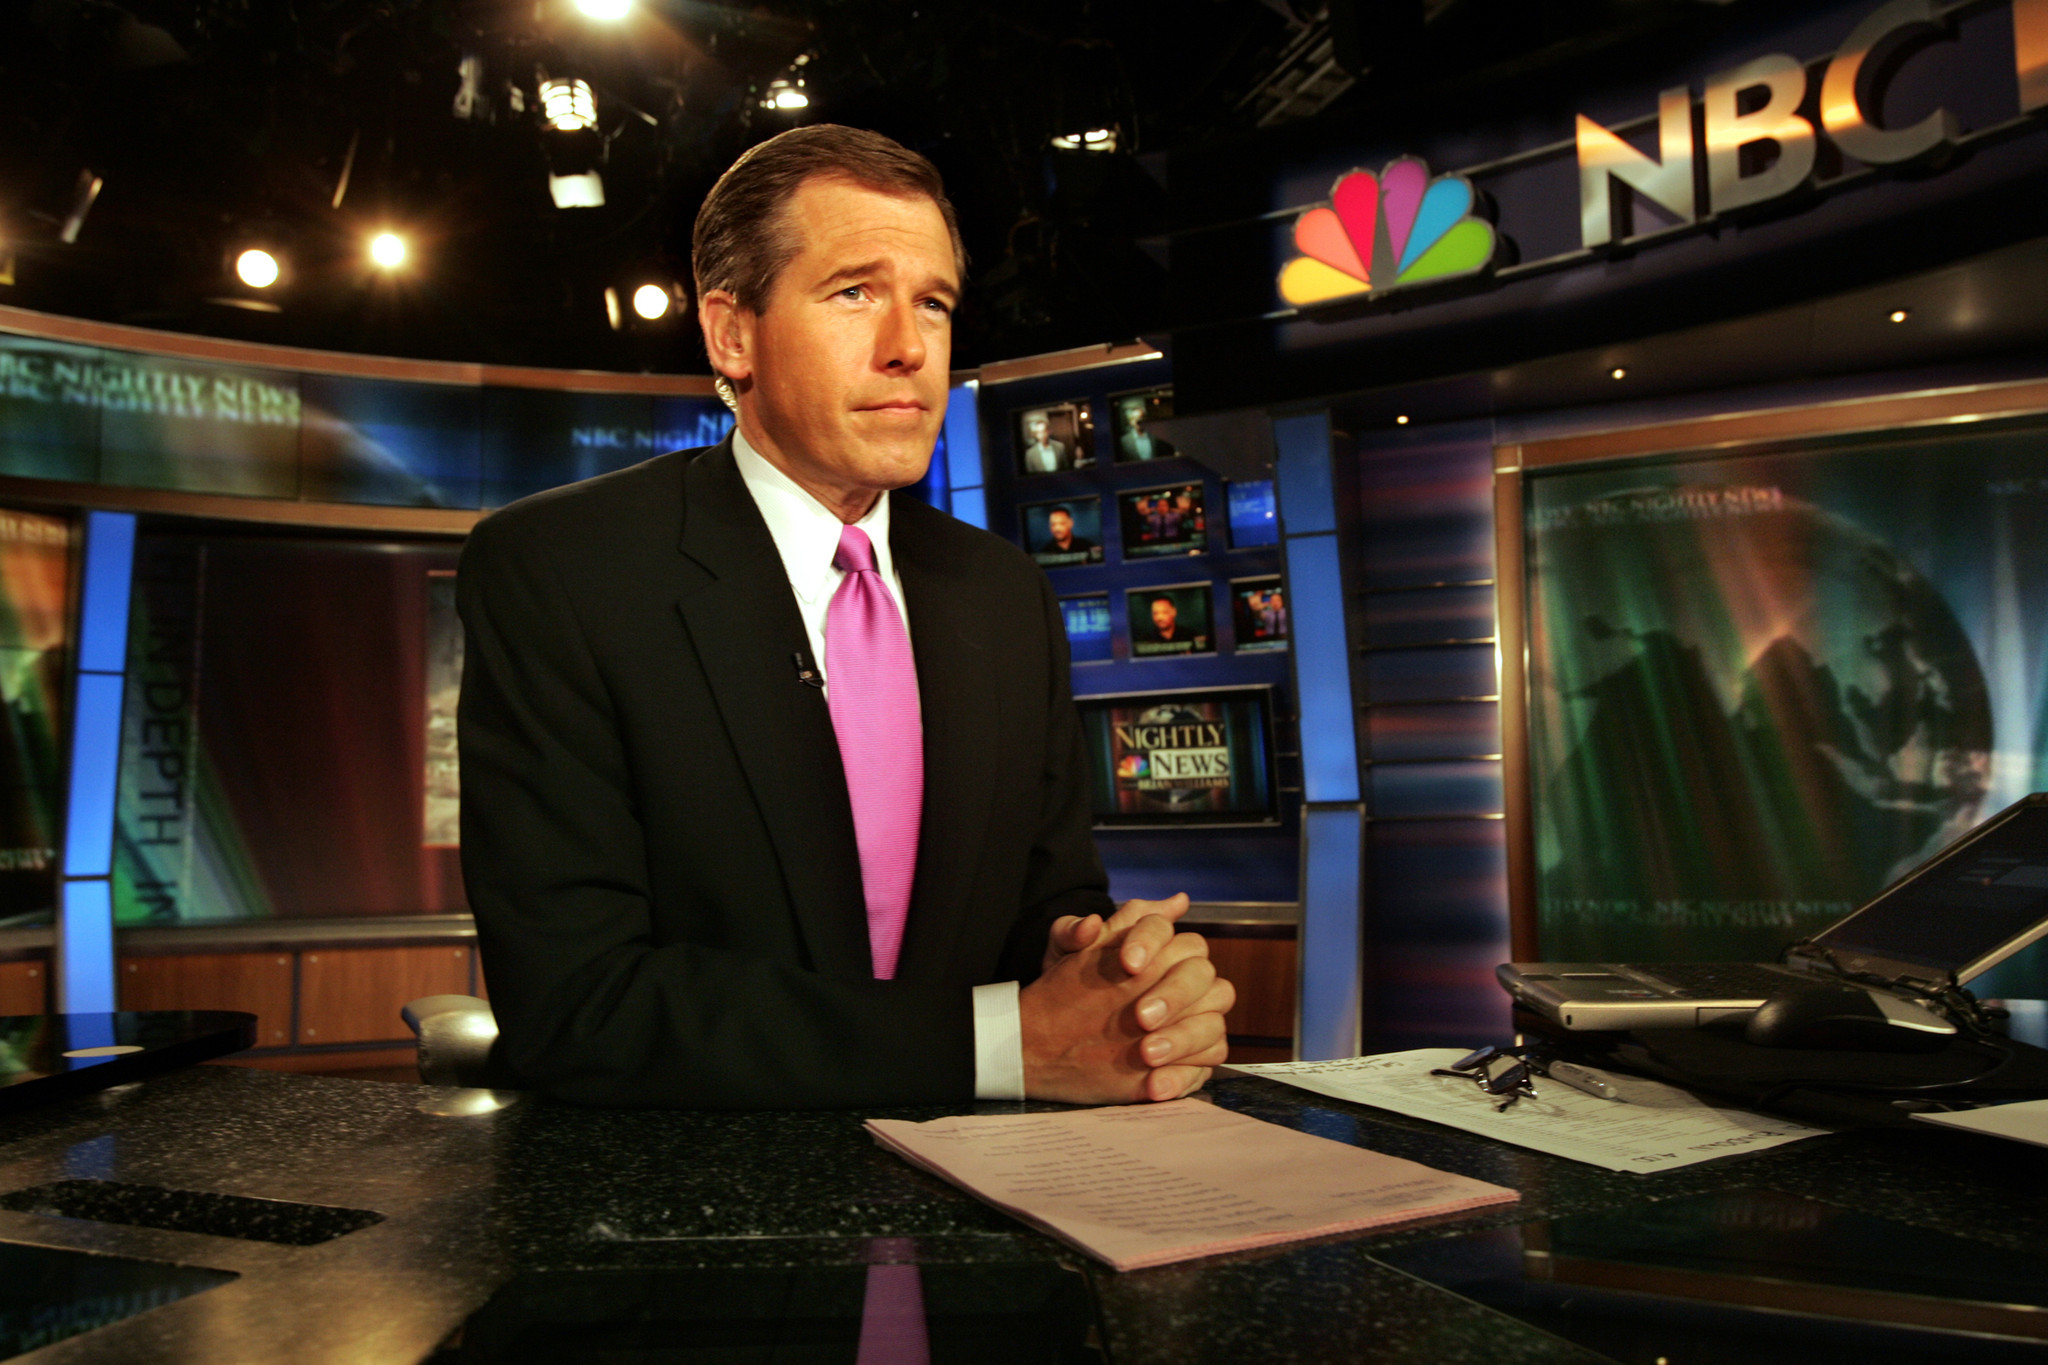 nbc 39 s brian williams in stunning fall from grace gets six month suspension chicago tribune. Black Bedroom Furniture Sets. Home Design Ideas